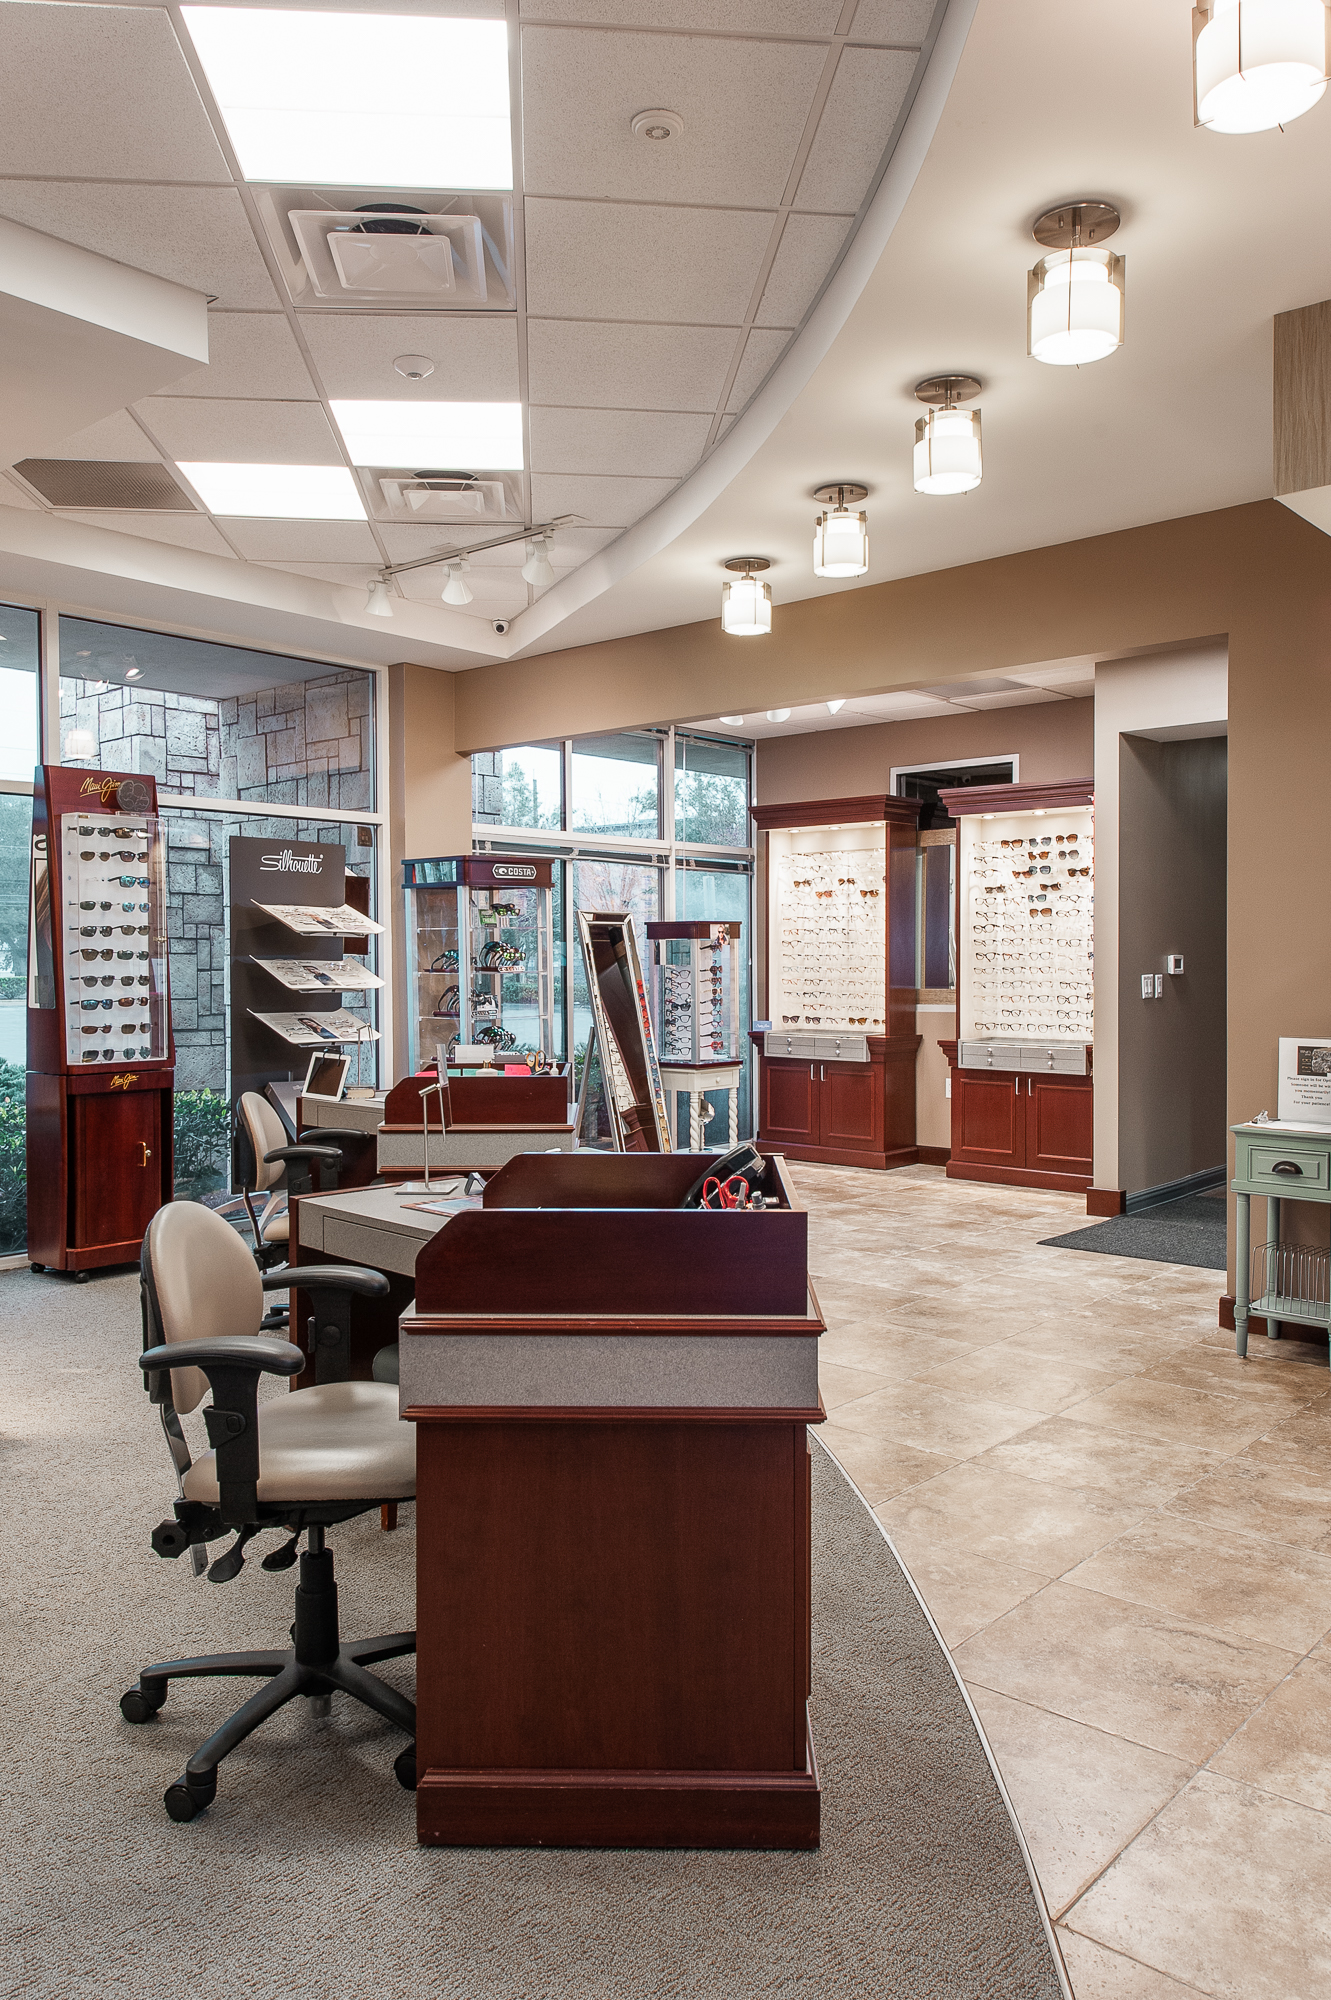 Micamy Design Studio_Interior Design_Clay Eye_Mandarin_Opthamology_Commercial_Office_Medical_Eye Care_Renovation_Crossville_Interiors_Artwork_Coastal_Crossville_Eykon3.jpg